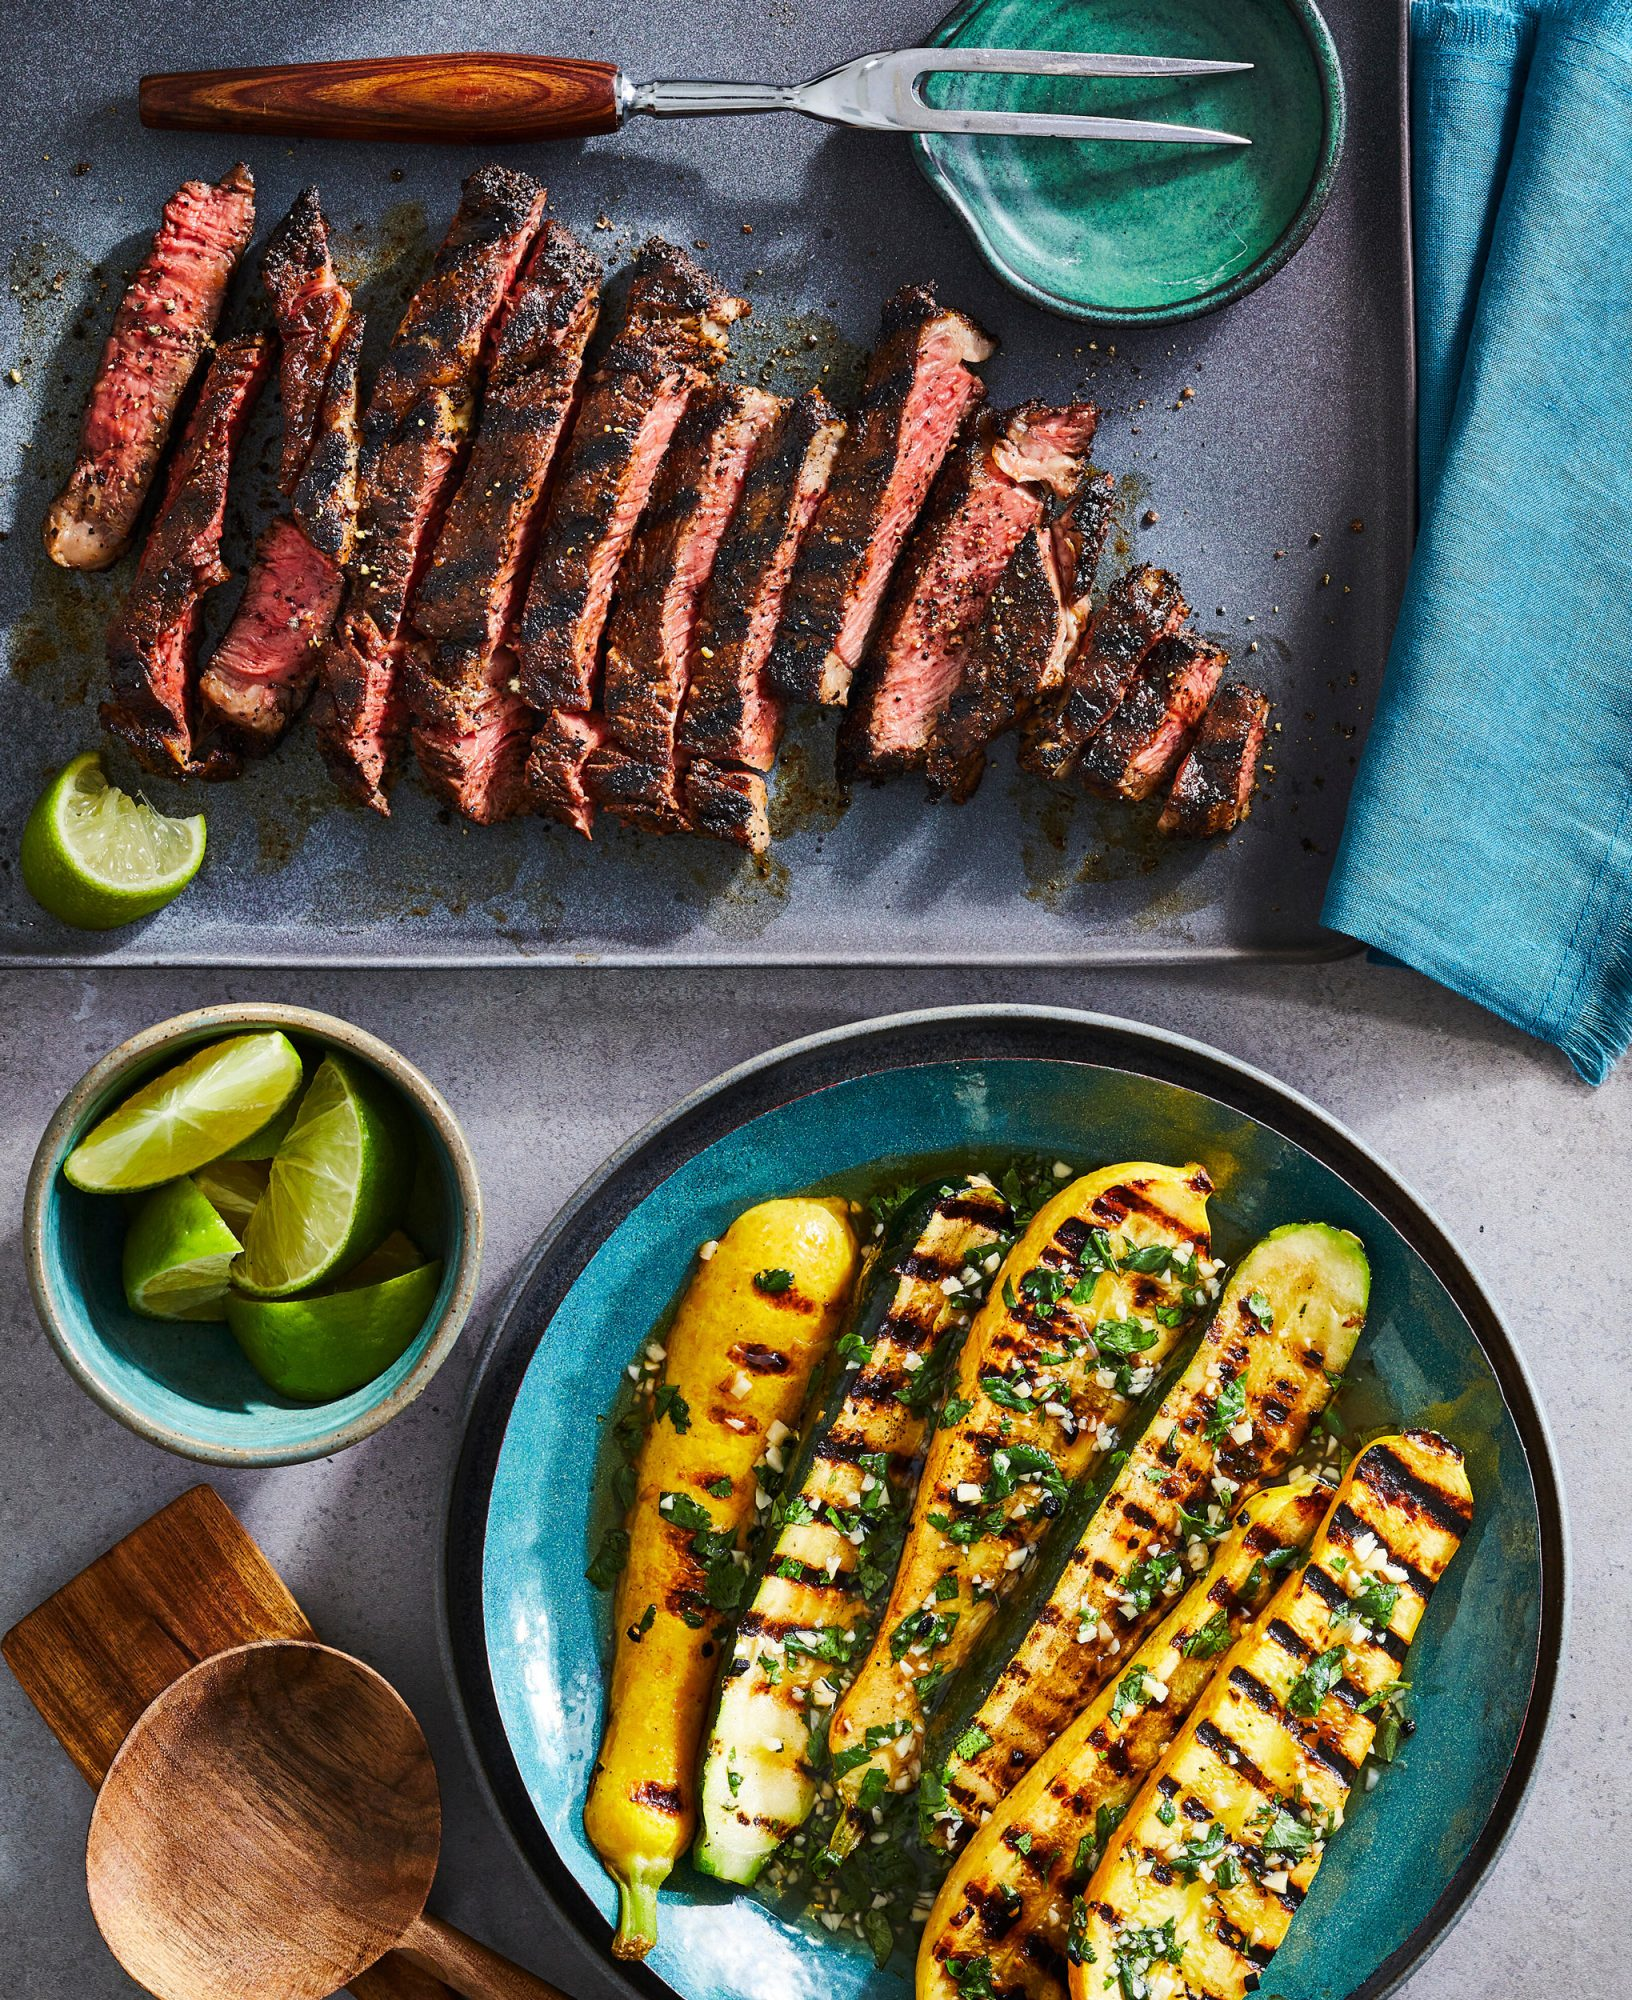 Coffee and Spice Grilled Ribeye with Grilled Squash